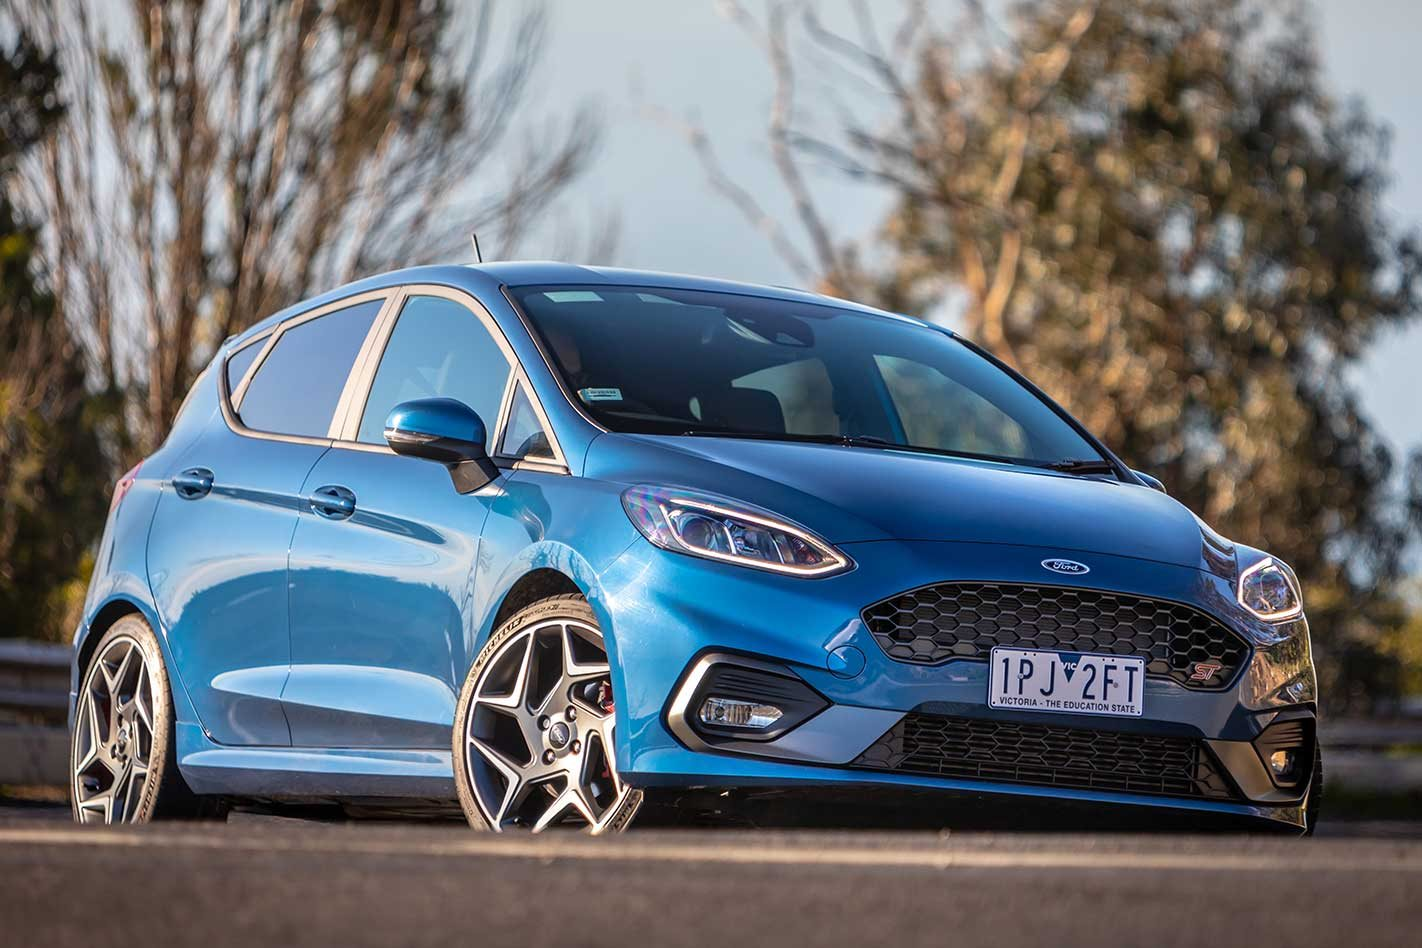 2020 Ford Fiesta St Australian Pricing And Specs Confirmed